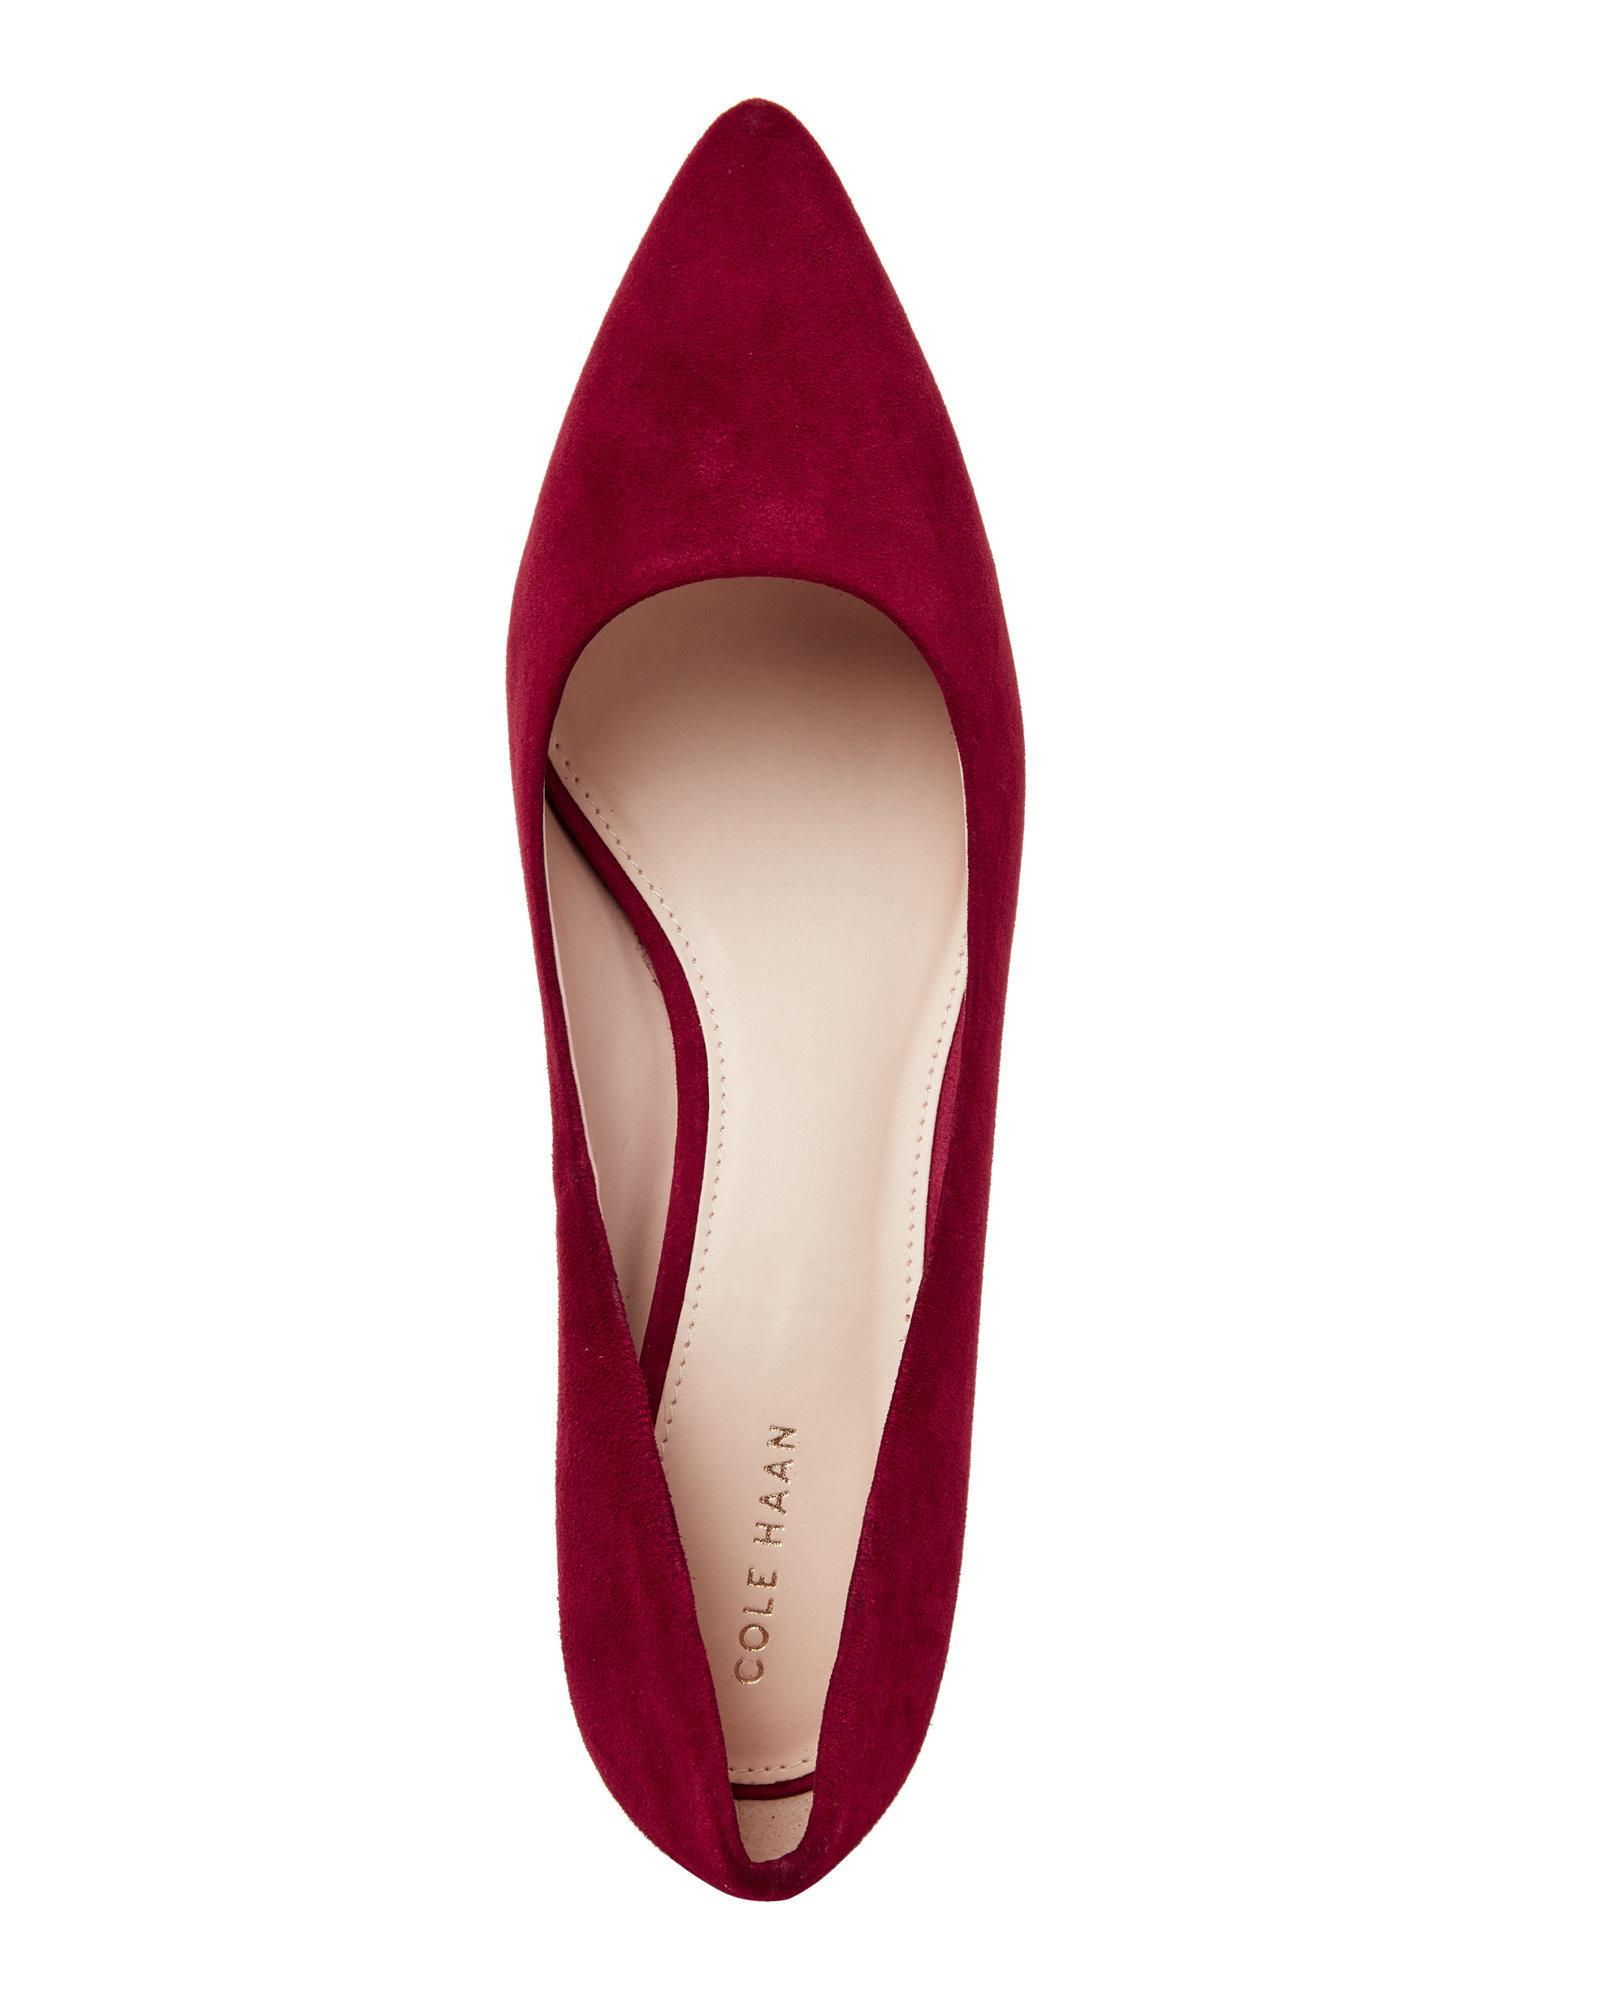 73343900d4f Lyst - Cole Haan Harlow Suede Pumps in Red